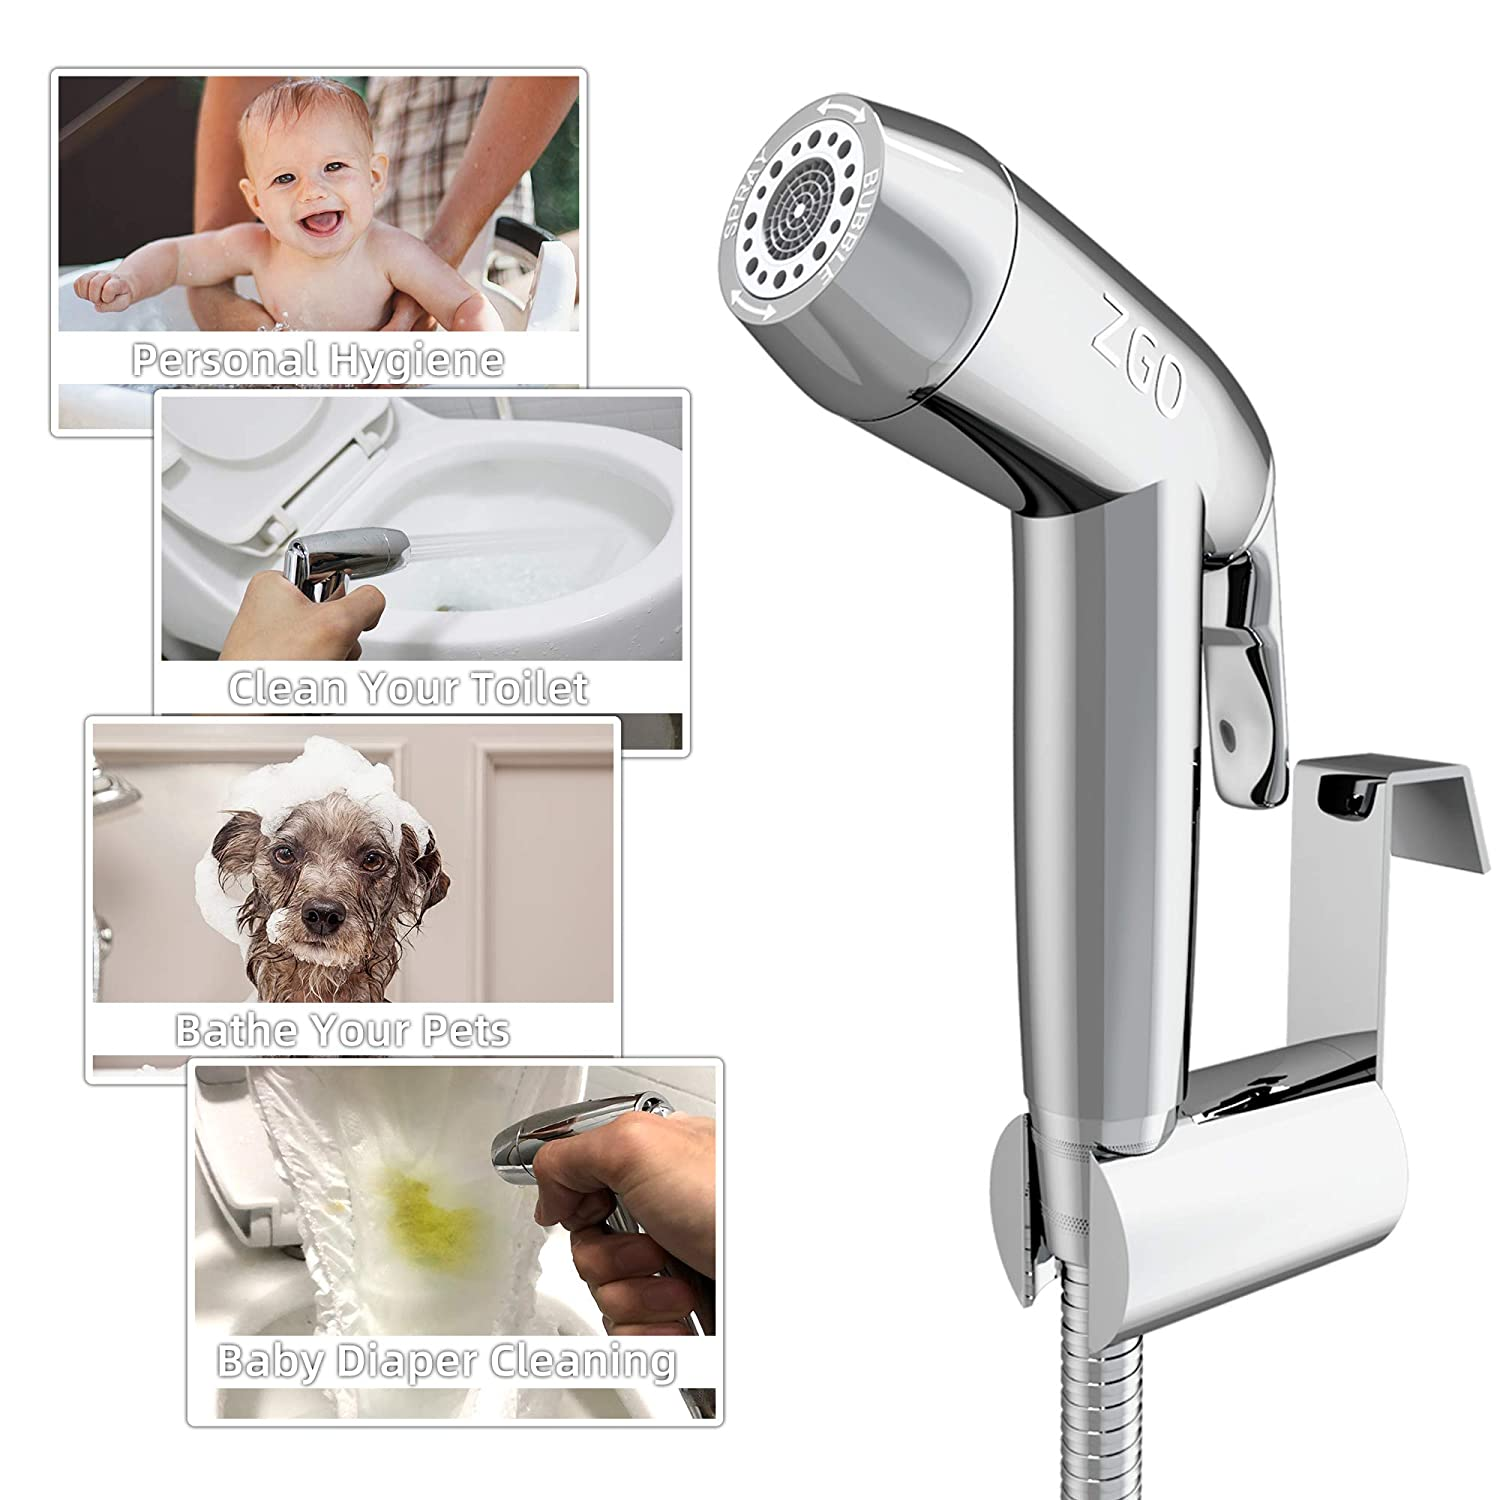 Handheld Bidet Sprayer for Toilet,ZGO Baby Cloth Diaper Sprayer with Superior Complete Accessories,Adjustable Pressure Bathroom Sprayer with Stainless Steel Hose,Support Wall or Toilet Mount